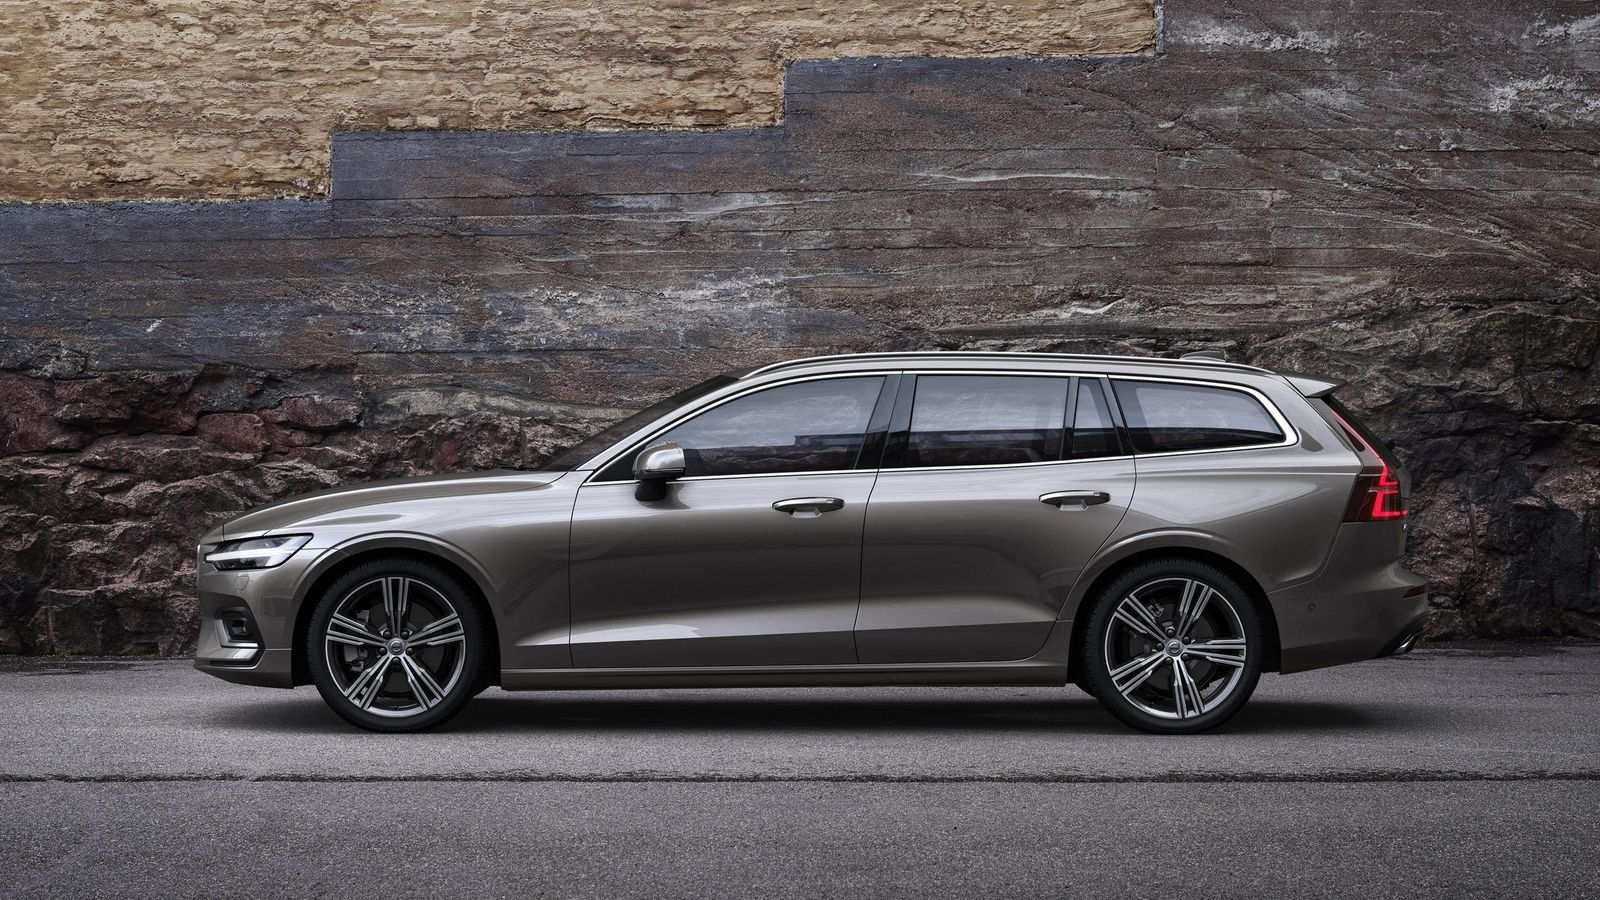 94 Gallery of 2019 Volvo Plug In Picture with 2019 Volvo Plug In